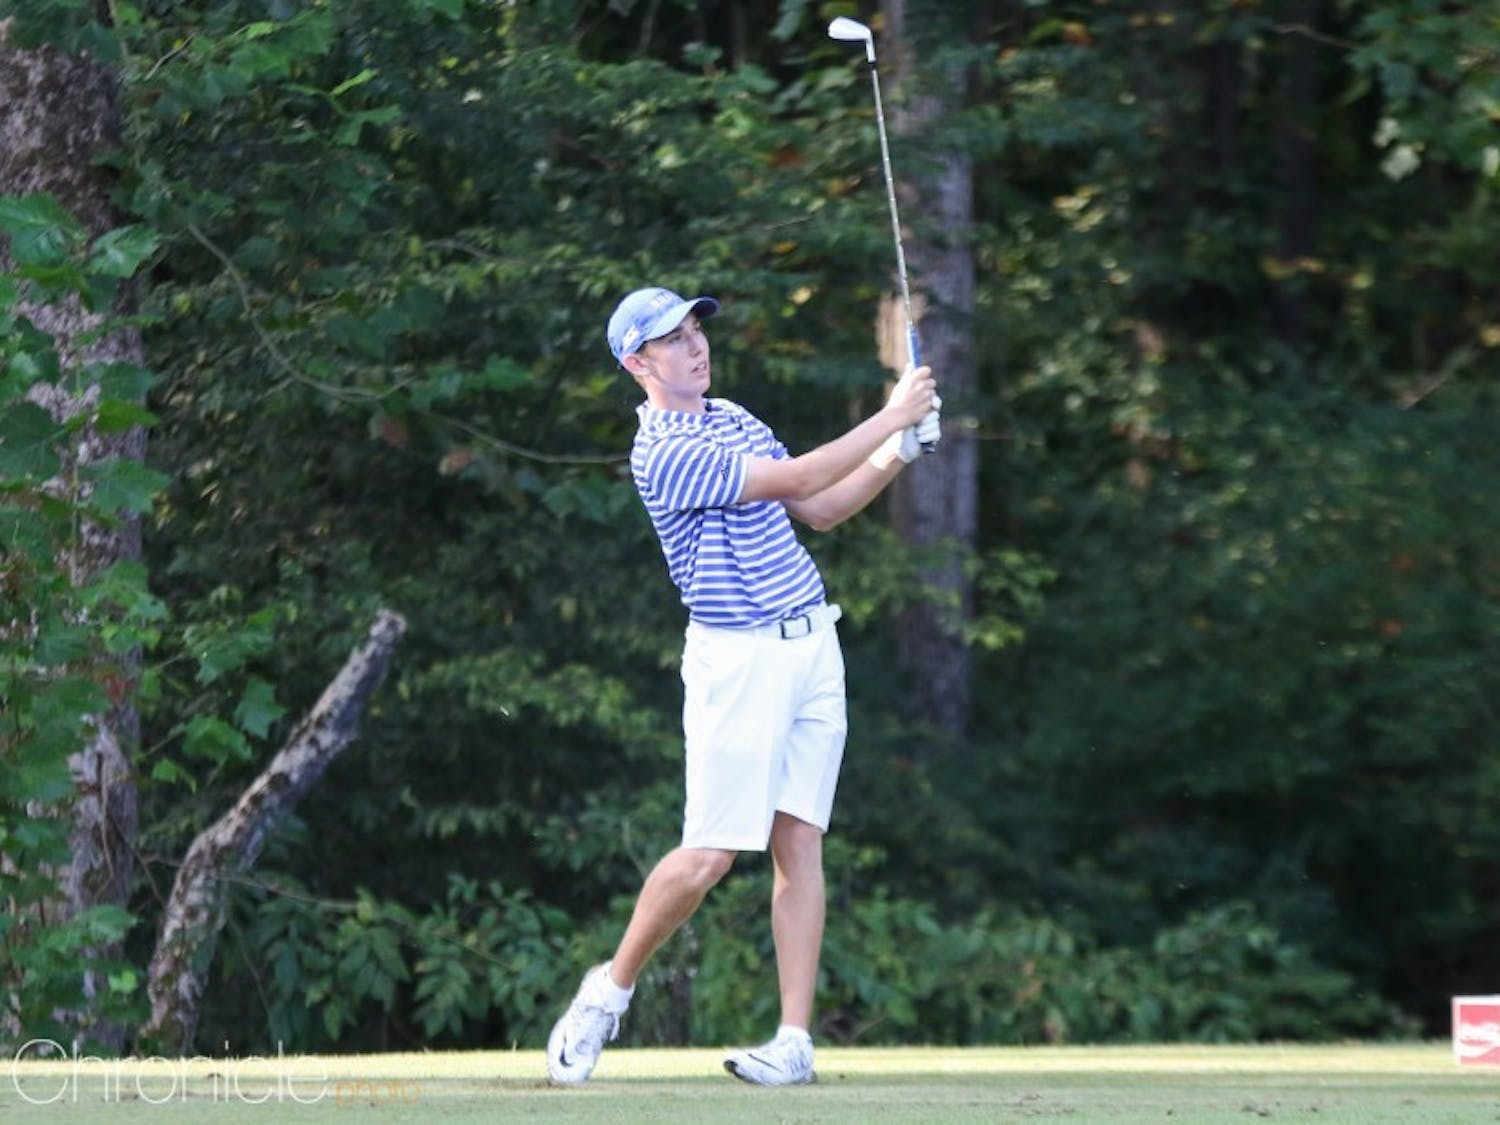 Junior Evan Katz finished the spring campaign as Golfweek's No. 11 ranked player in the country.